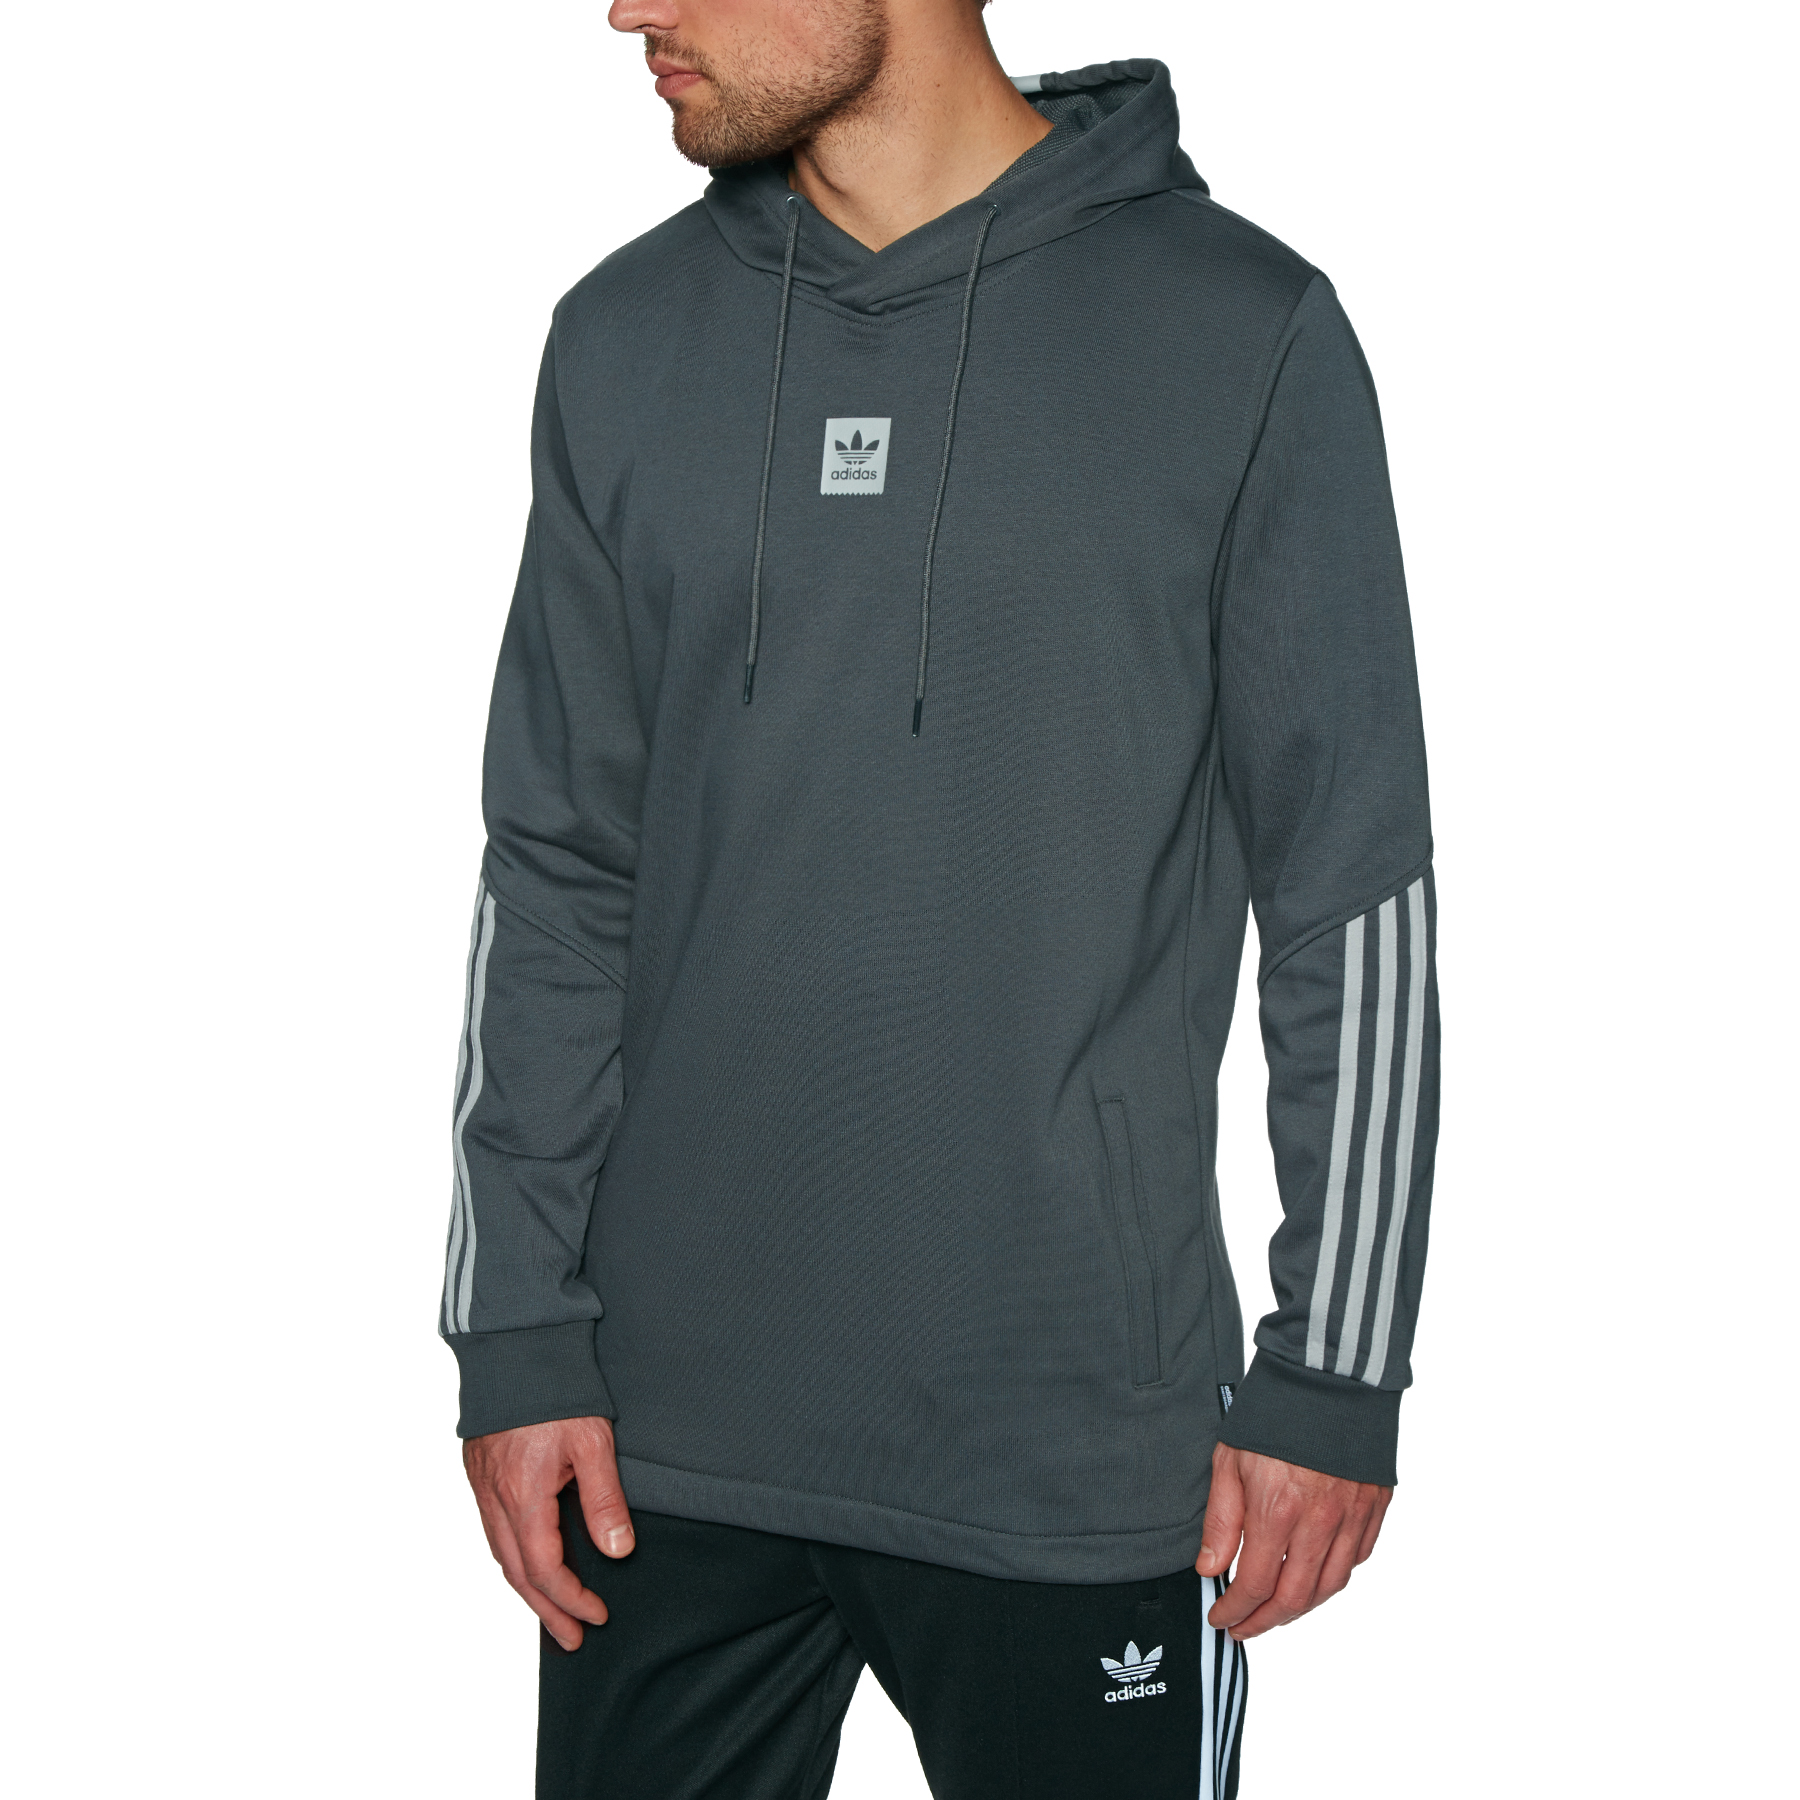 Adidas Skateboarding Clothing & Skate Shoes | Surfdome Australia